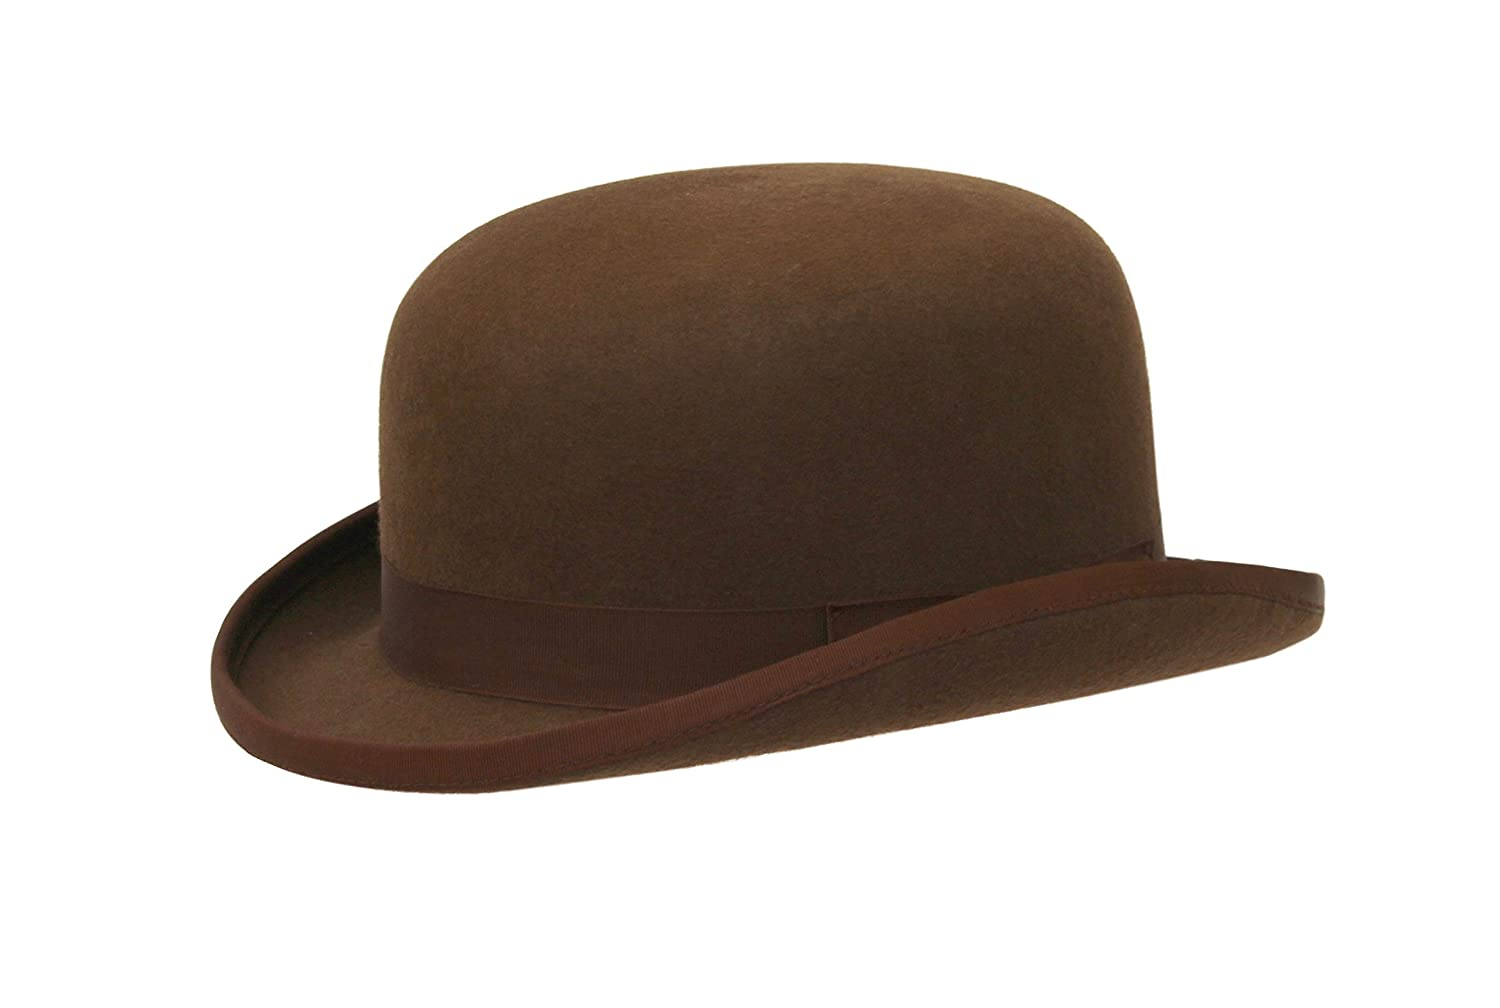 ad0a6bfb0 Men's Formal Traditional Wool Brown Bowler Hat